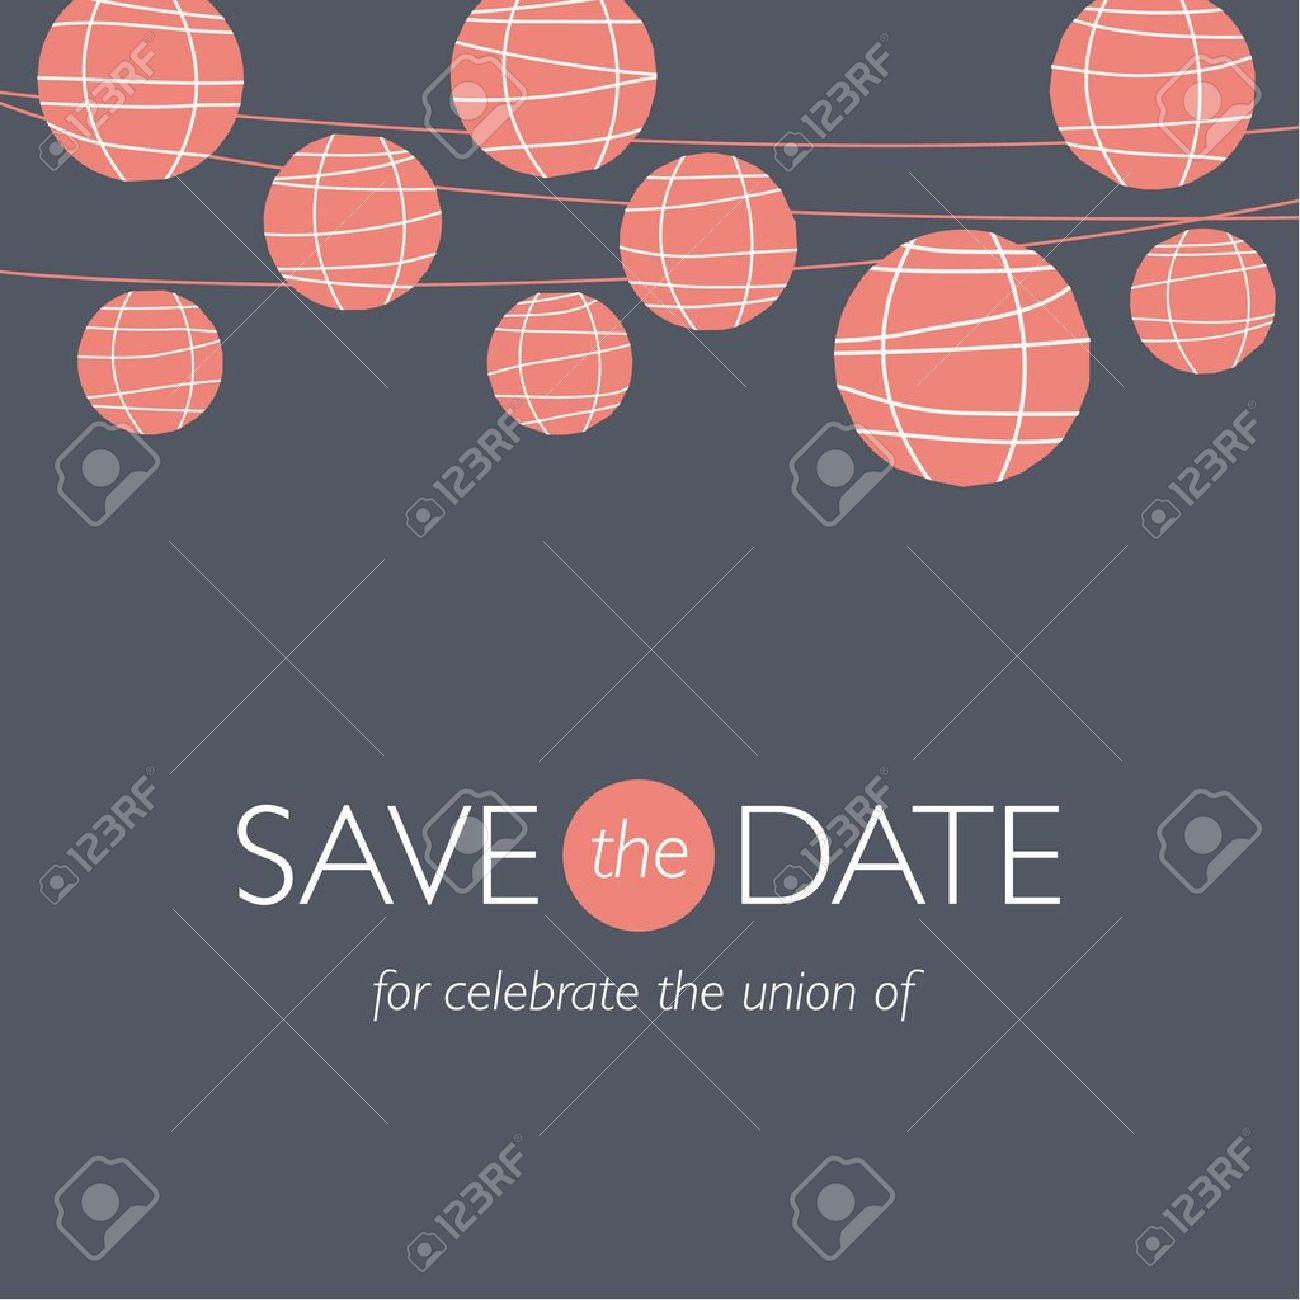 wedding invitation card, save the date, balloons paper lamps, wedding background illustration vector Stock Vector - 17435001